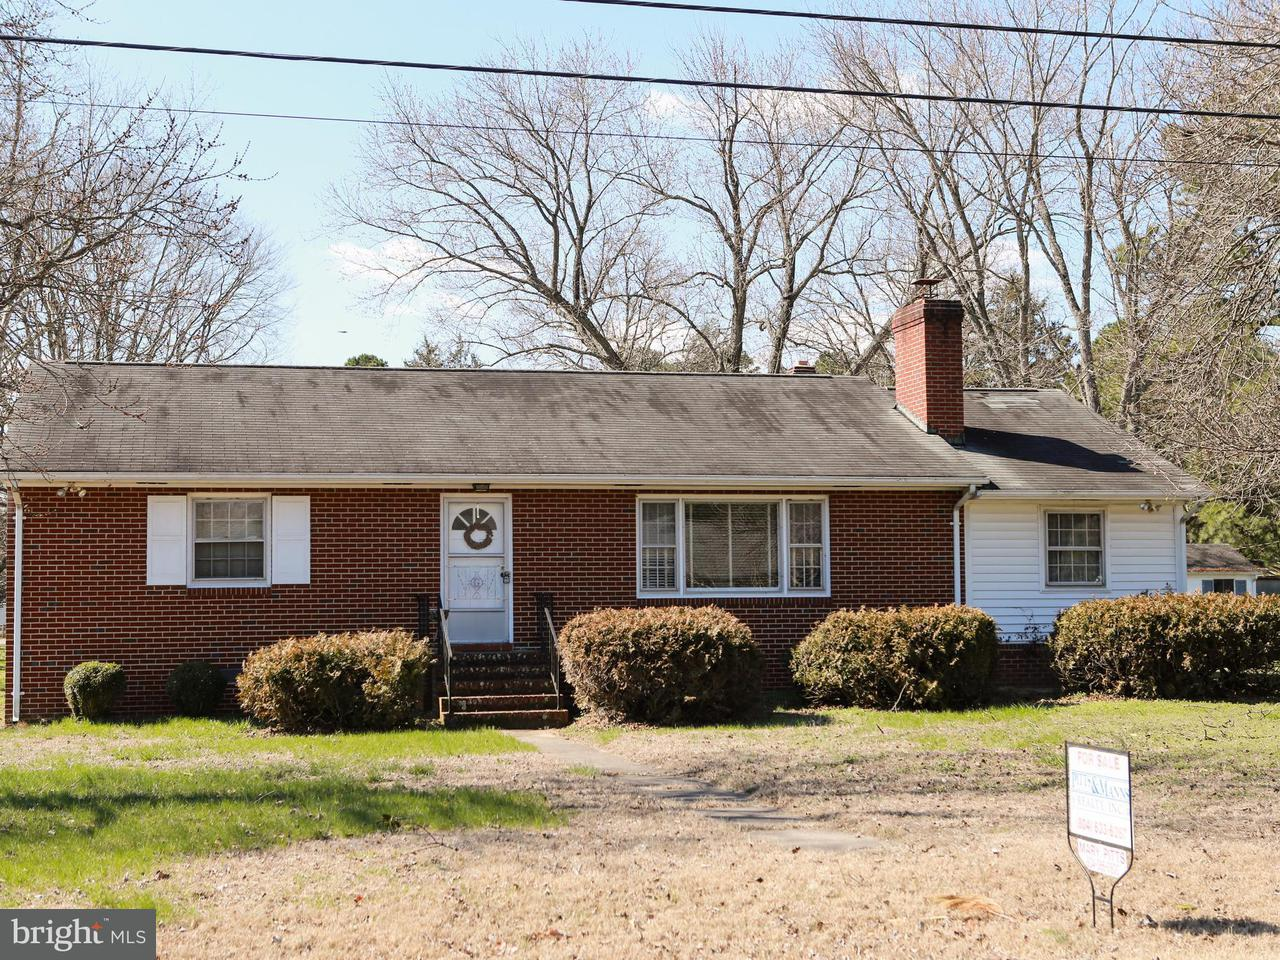 Single Family for Sale at 16070 Healy St Milford, Virginia 22514 United States